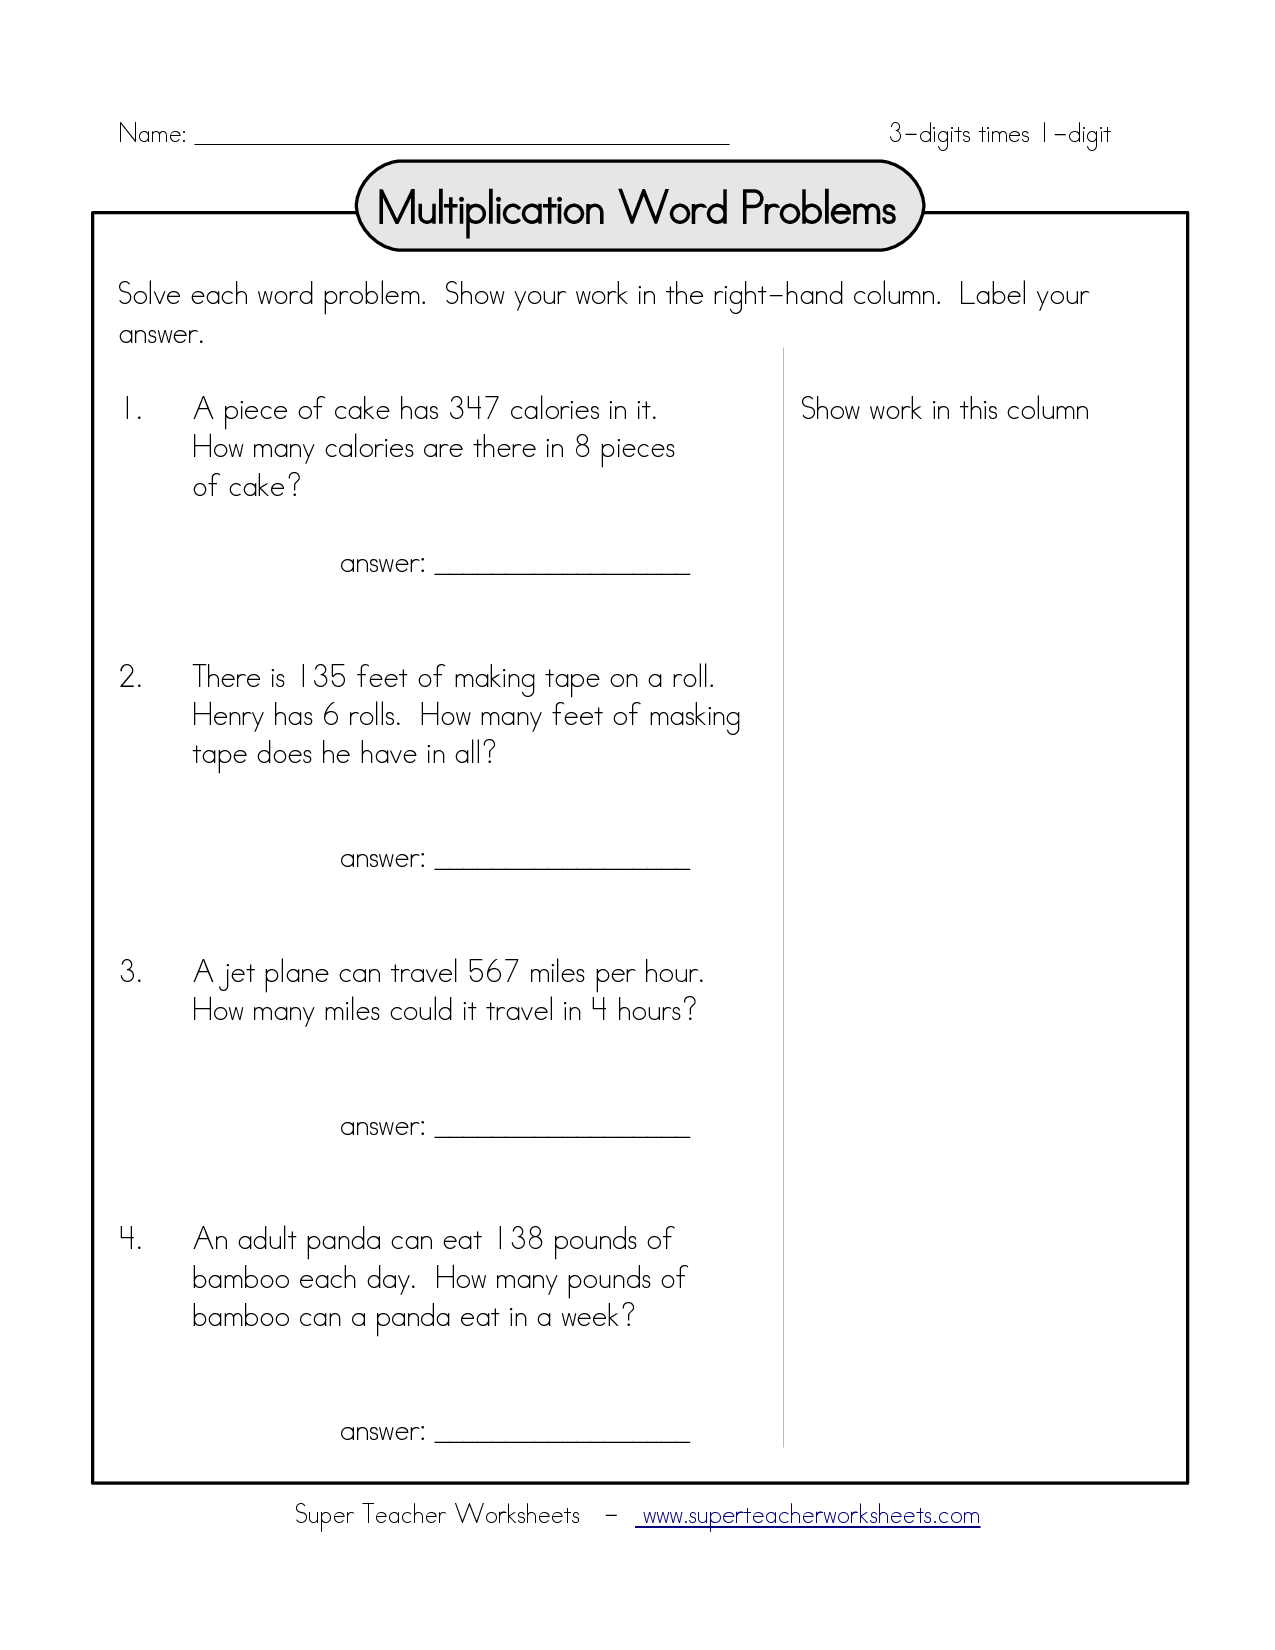 Worksheet Double Digit Multiplication Worksheets Grade 5 1000 images about javales math worksheets on pinterest multiplication problems and multiplication